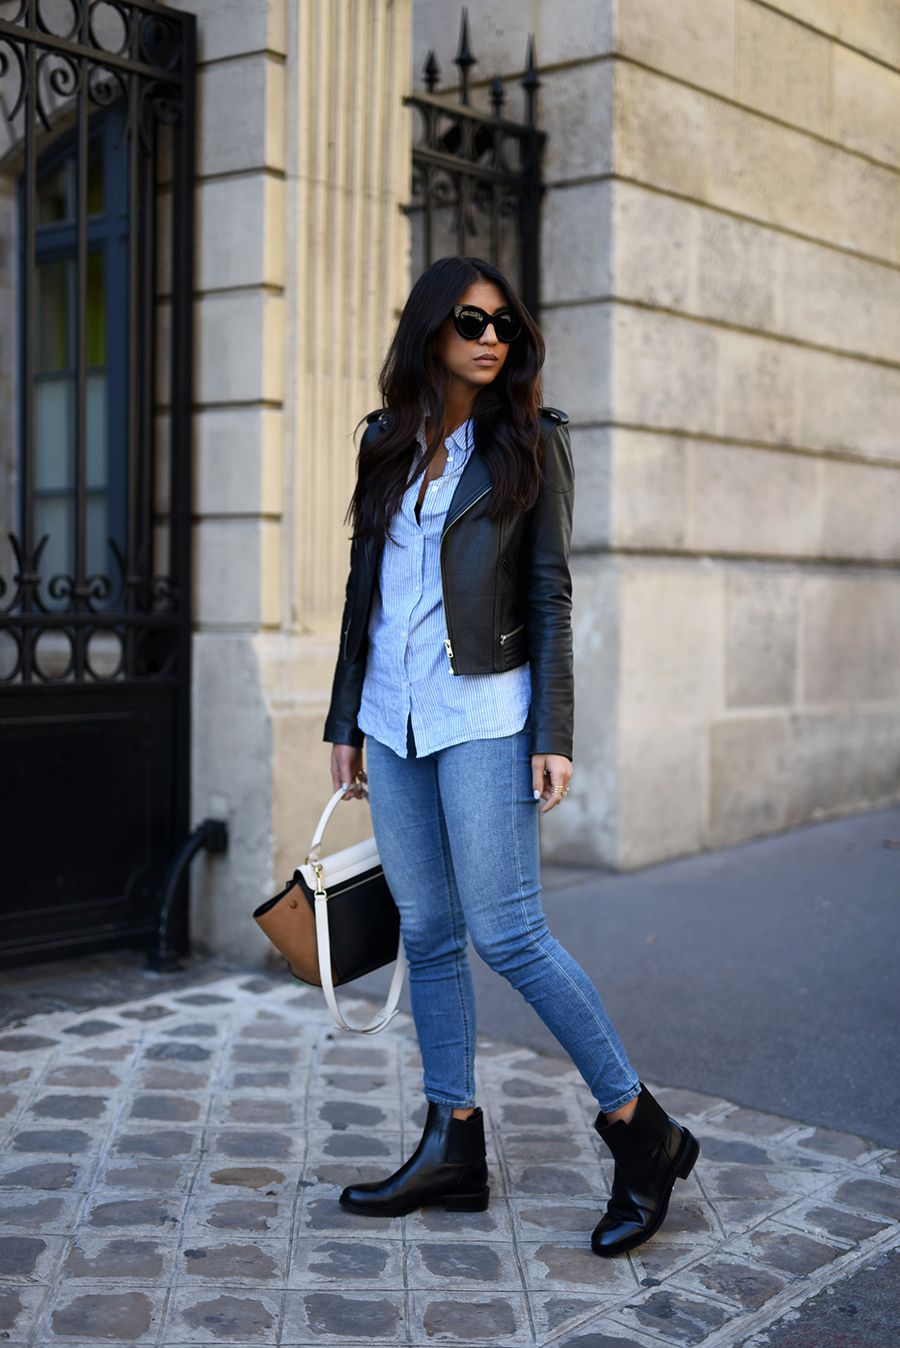 Pin on Favourite styling